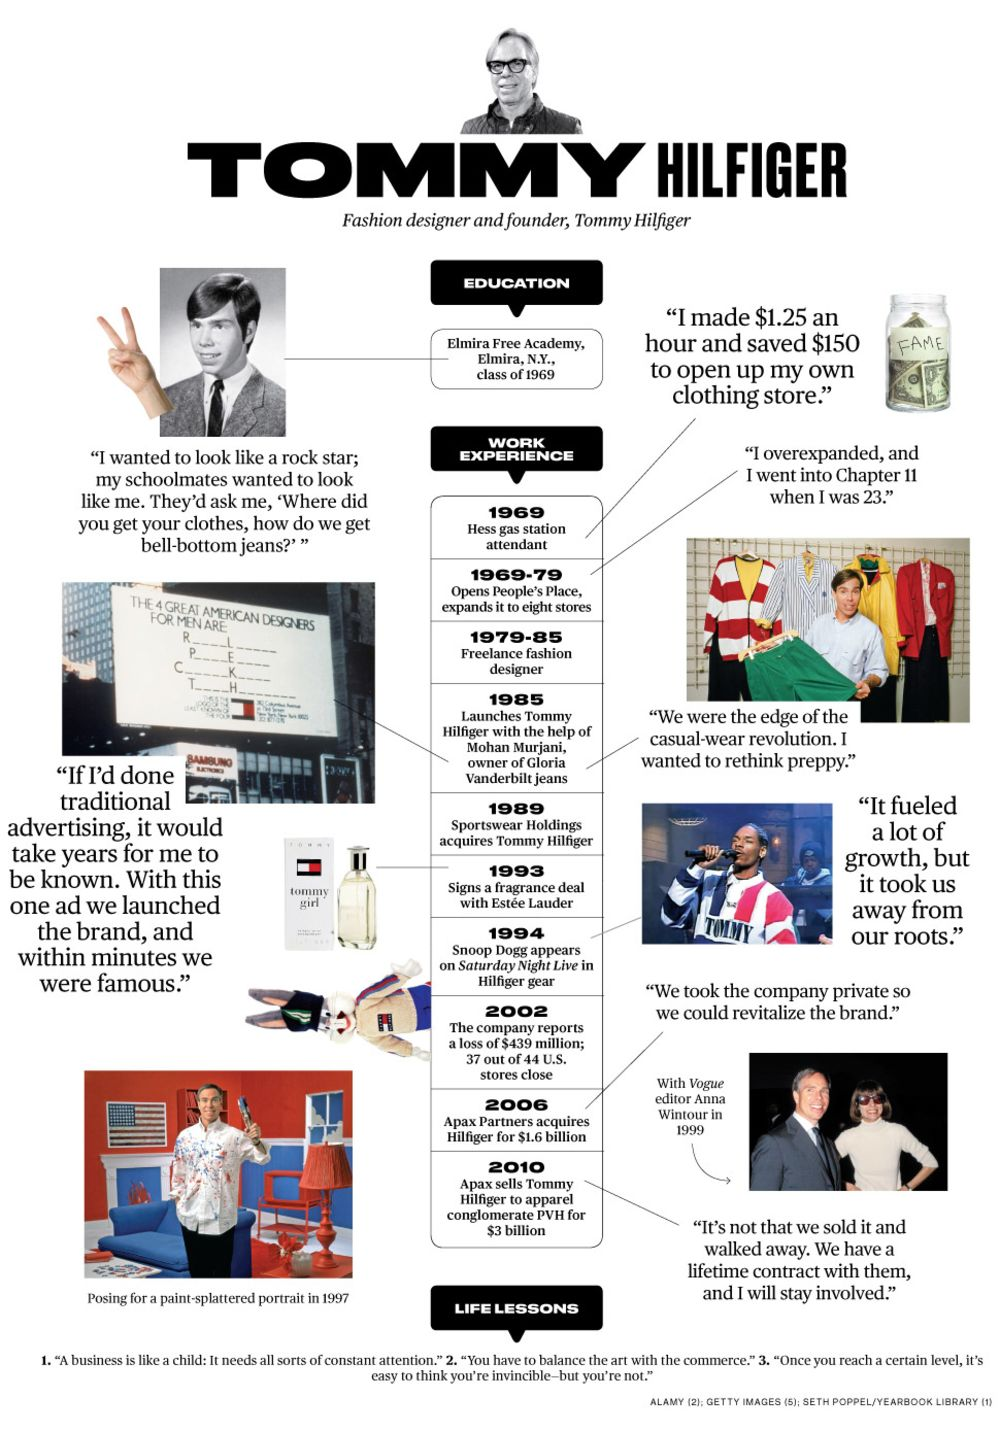 91459b67 Tommy Hilfiger: How Did I Get Here? The career path of the fashion designer